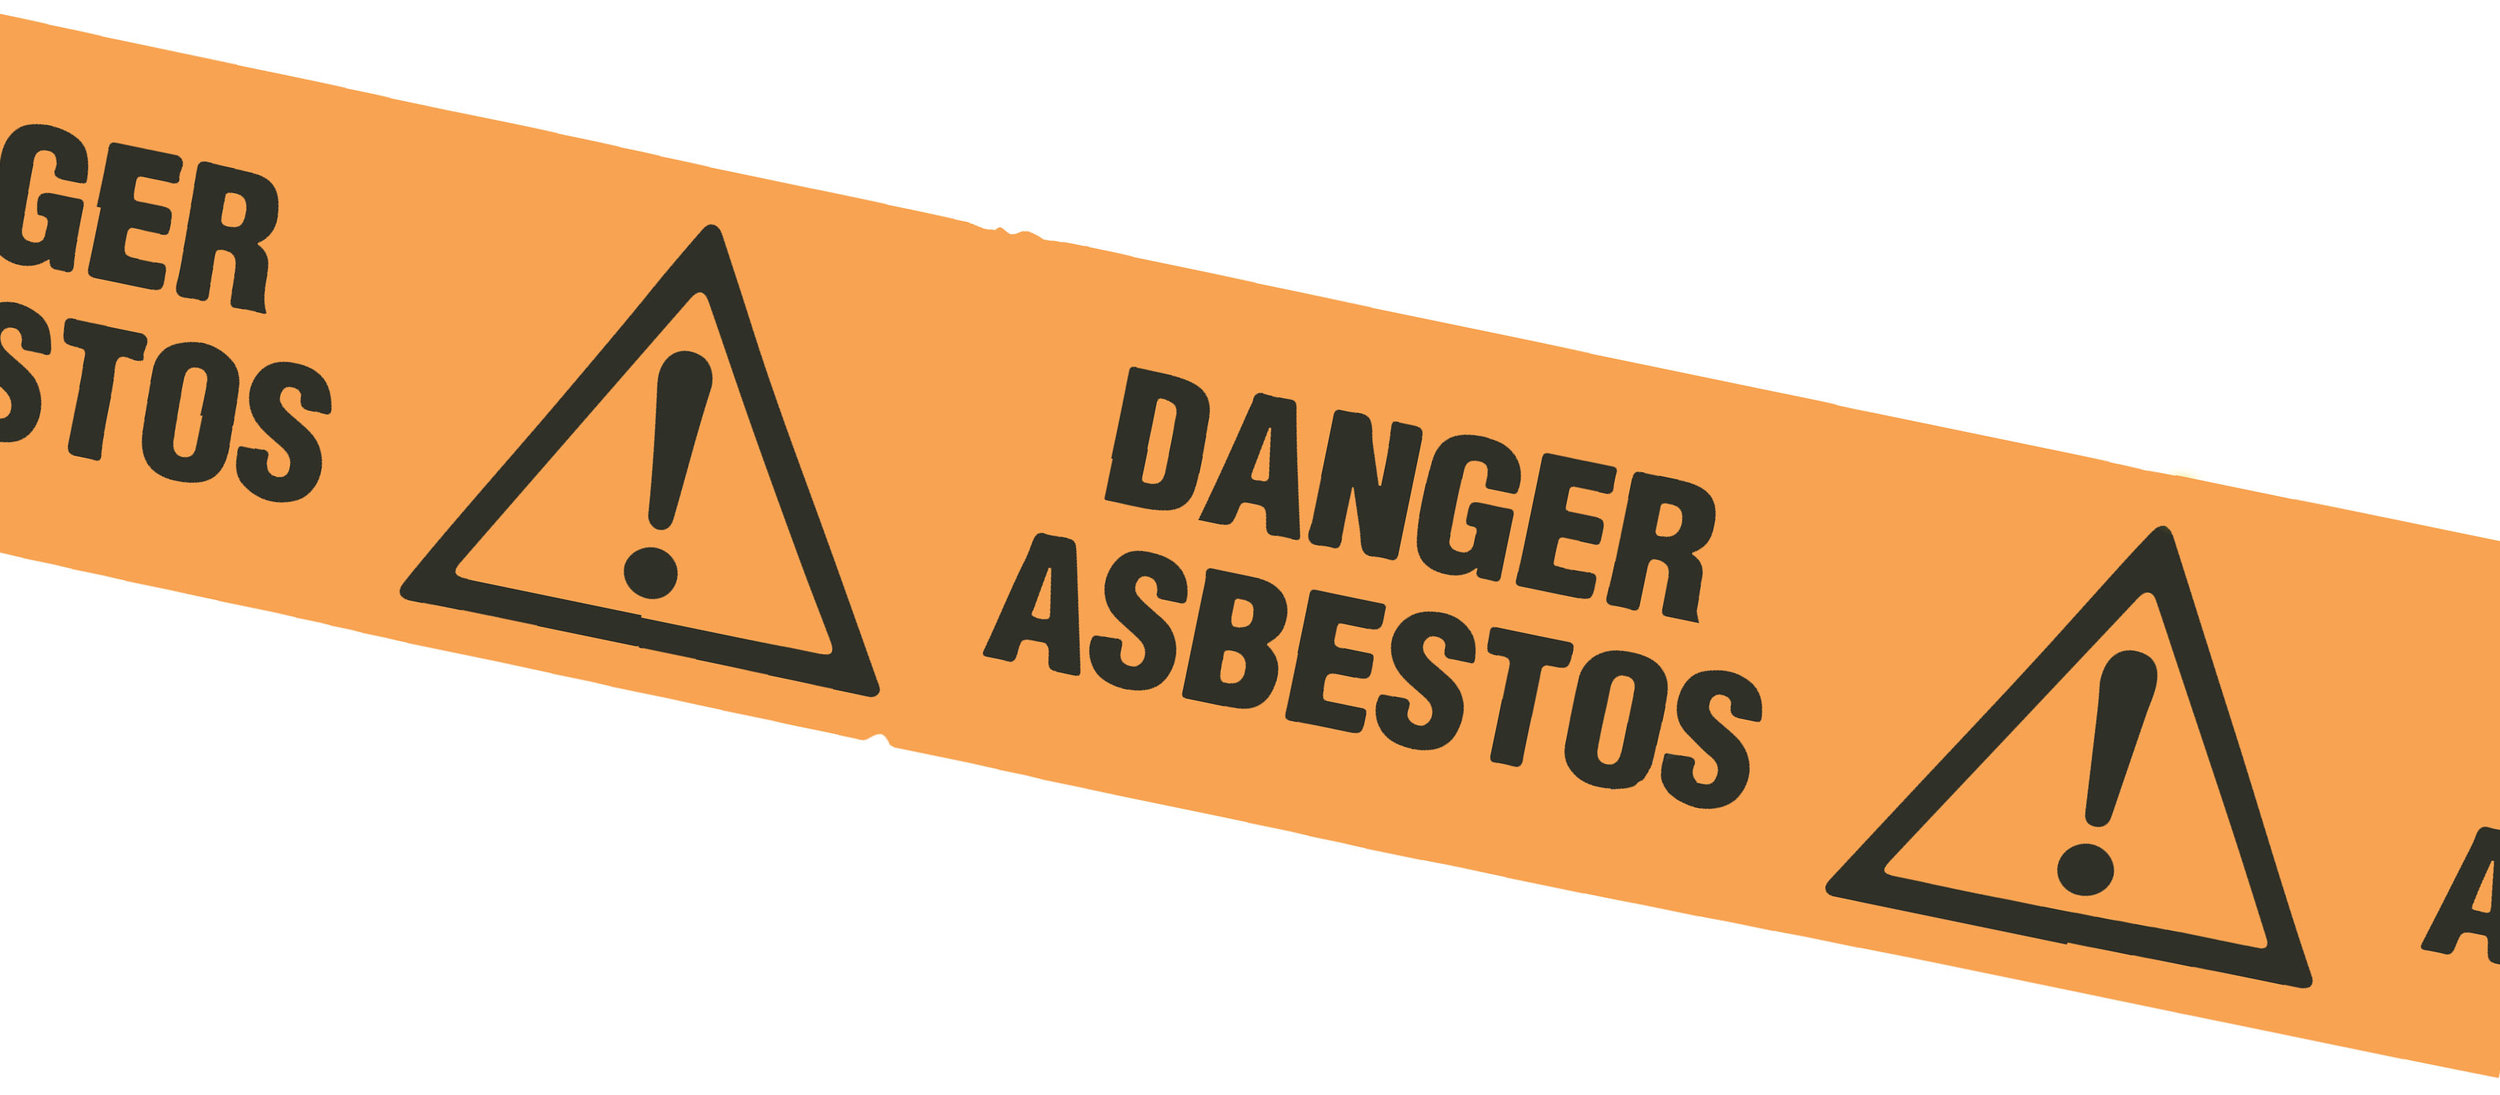 Find out more about Asbestos removal here. -